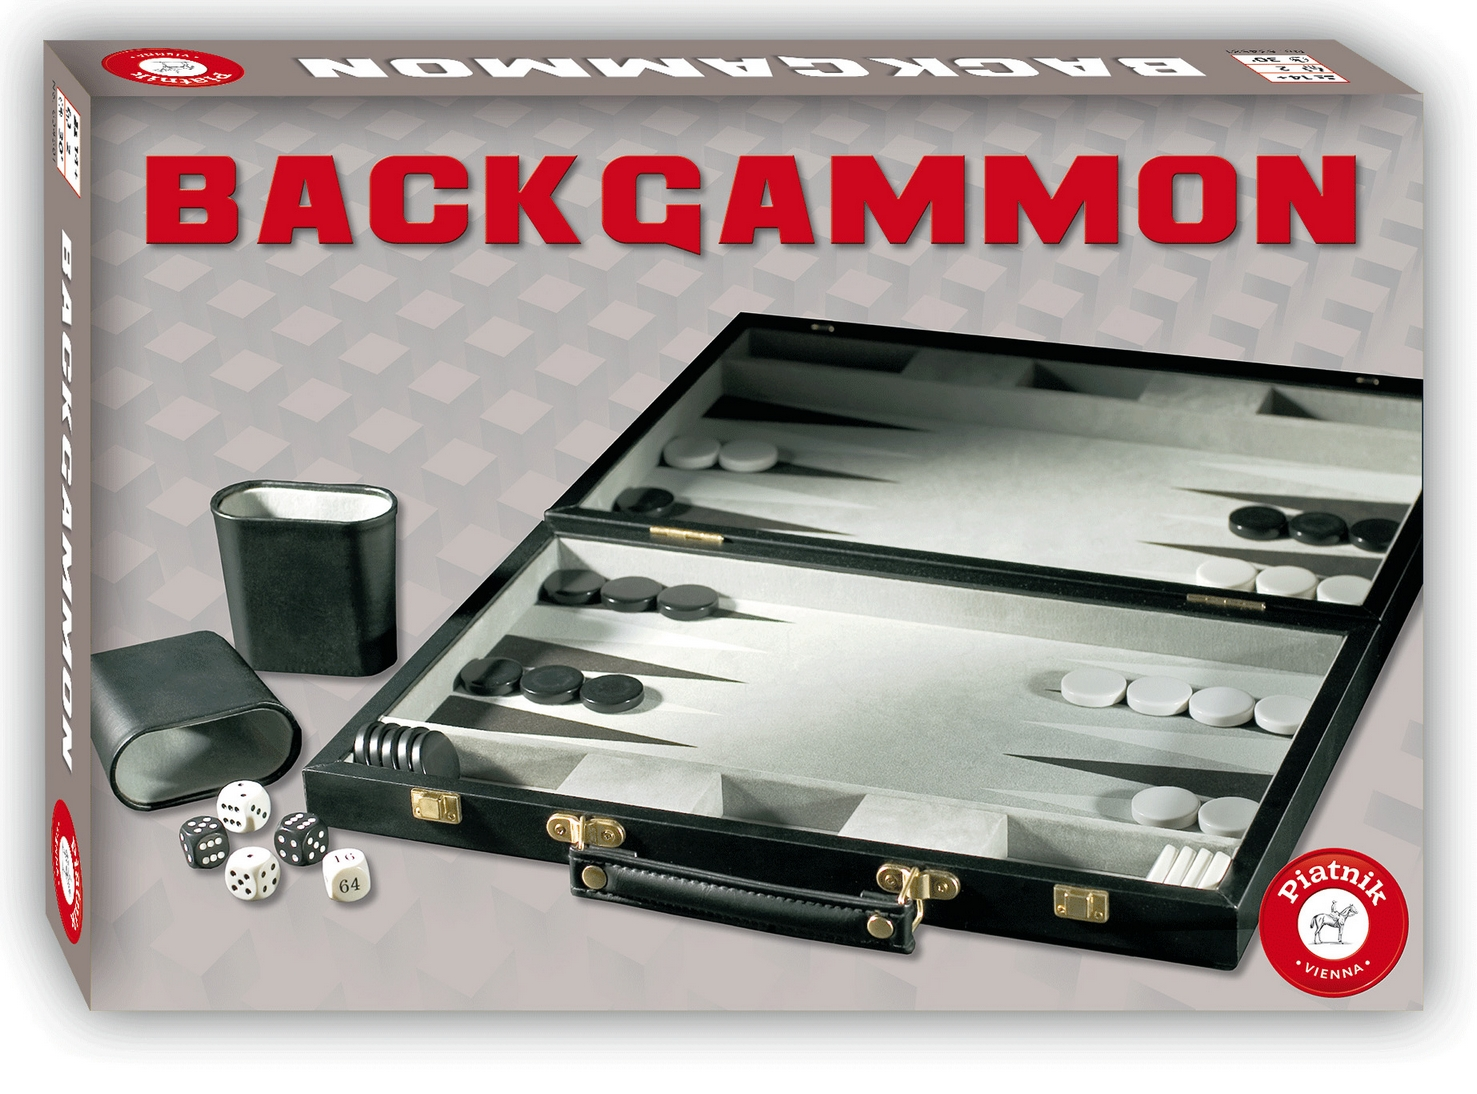 634581_Backgammon.jpg